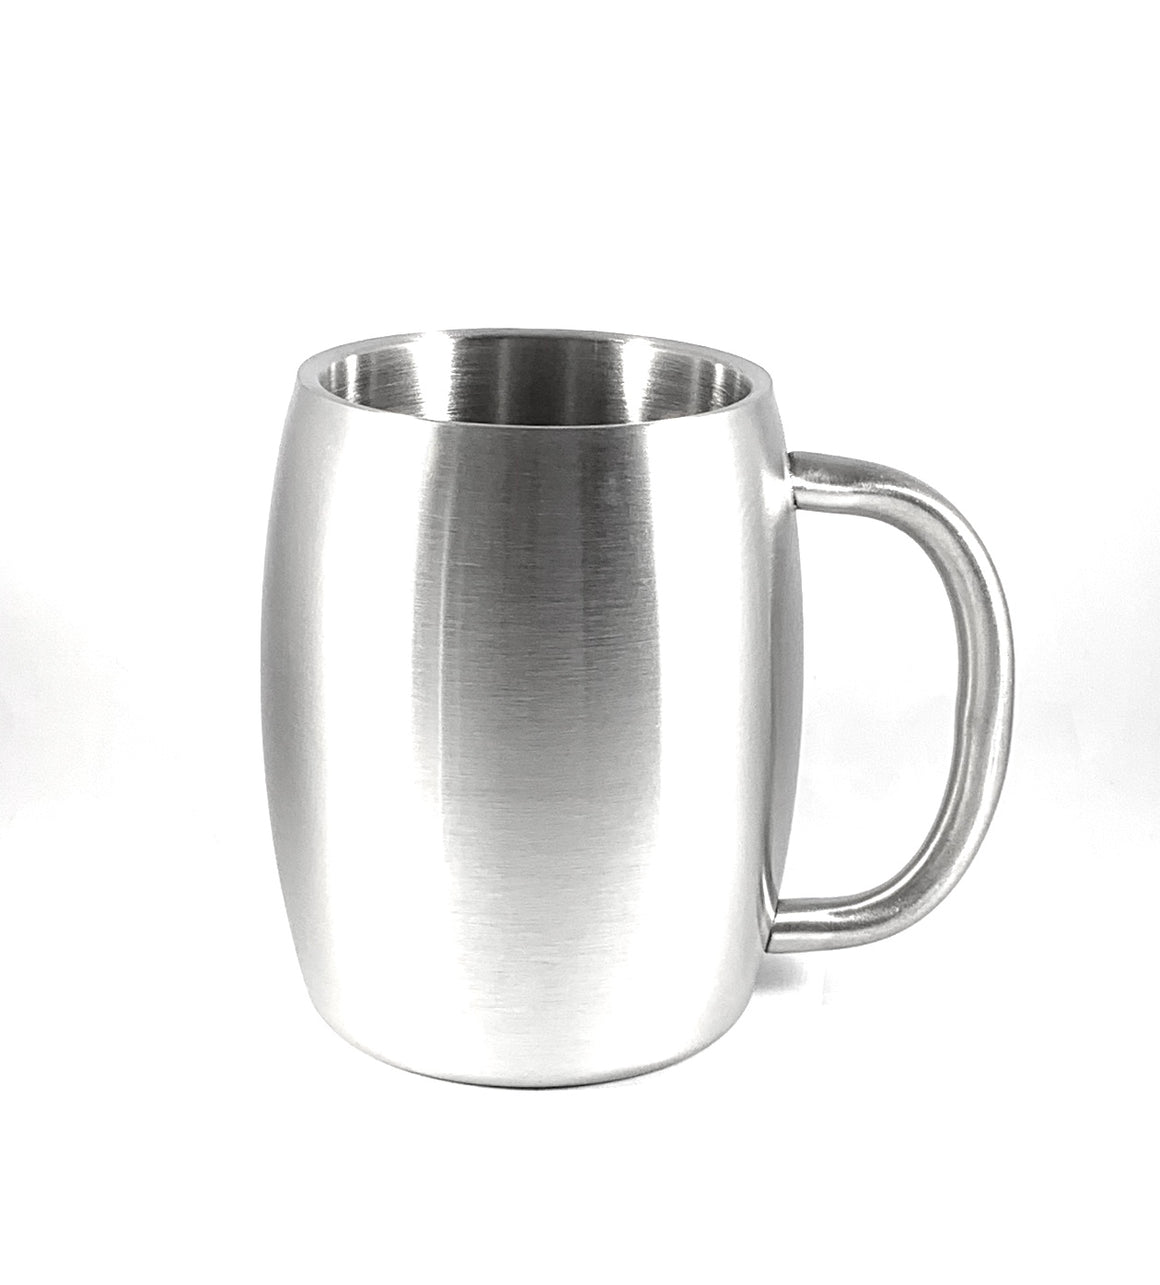 Steely Stainless Steel - 14 oz Barrel Mug